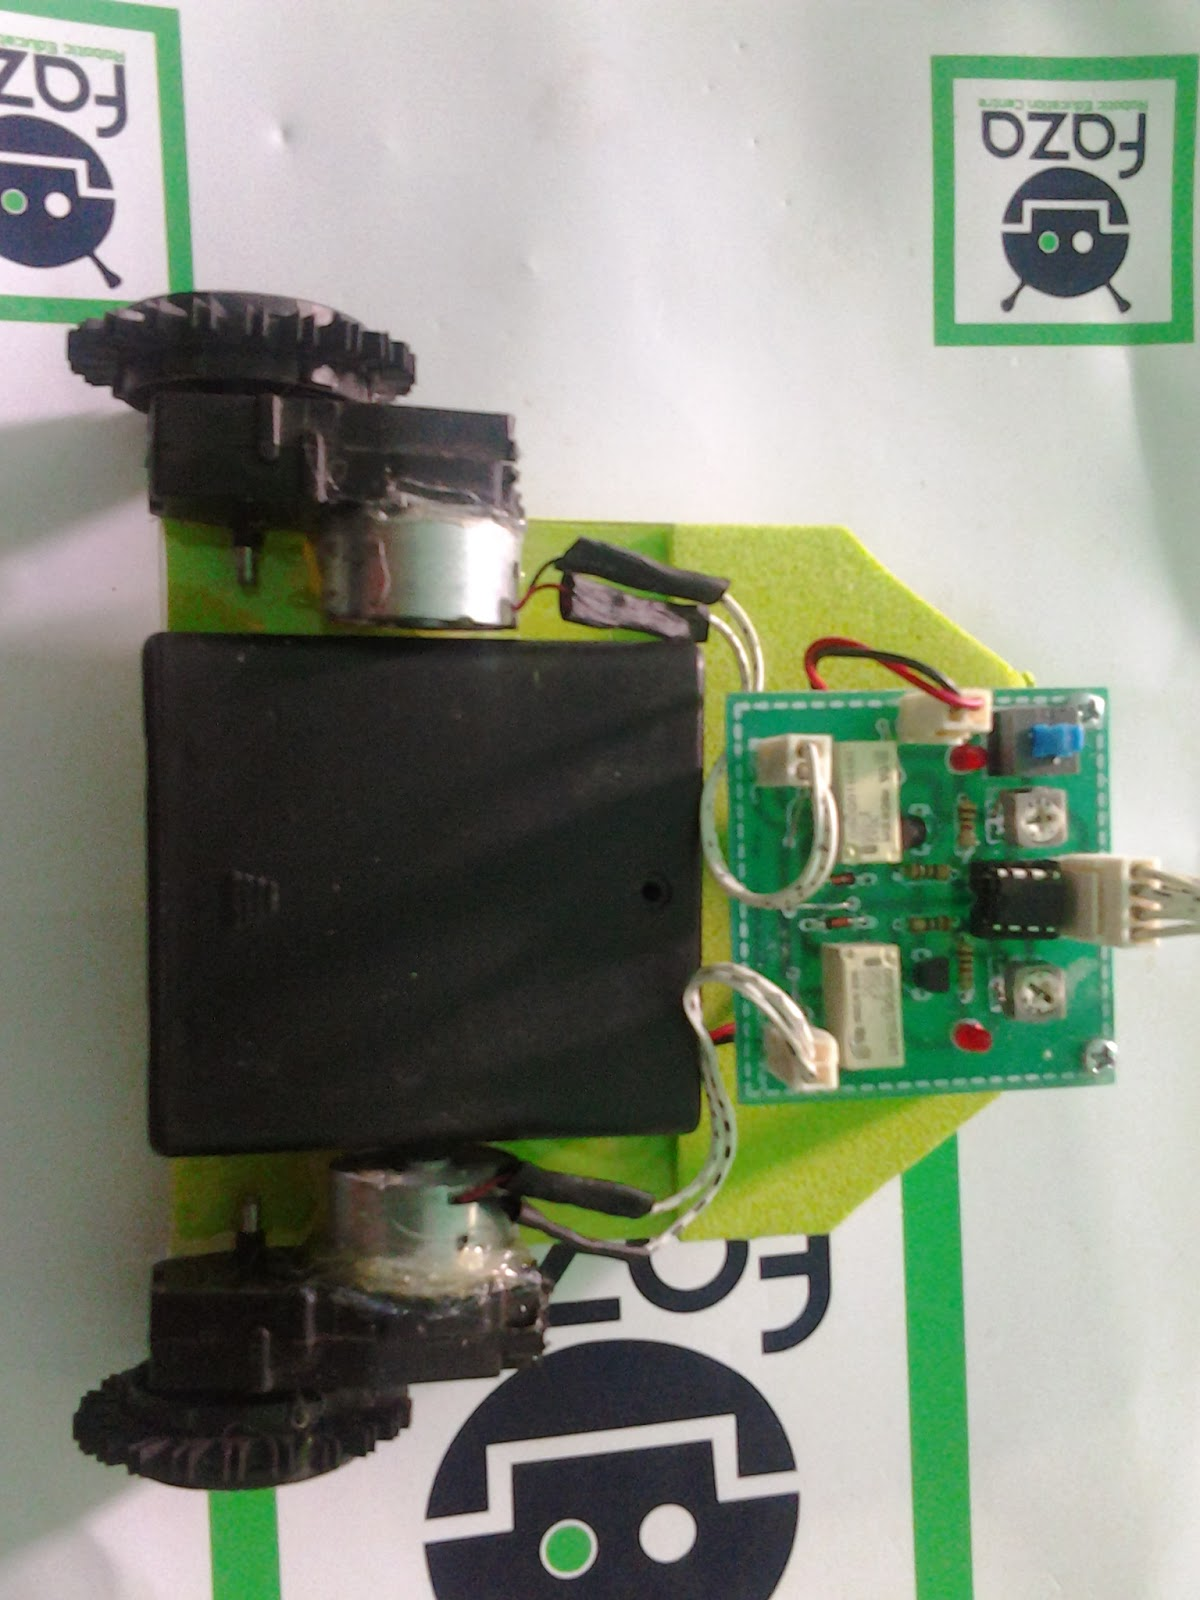 Robot Line Follower, Robot Line Follower 4 sensor, line Follower driver Relay